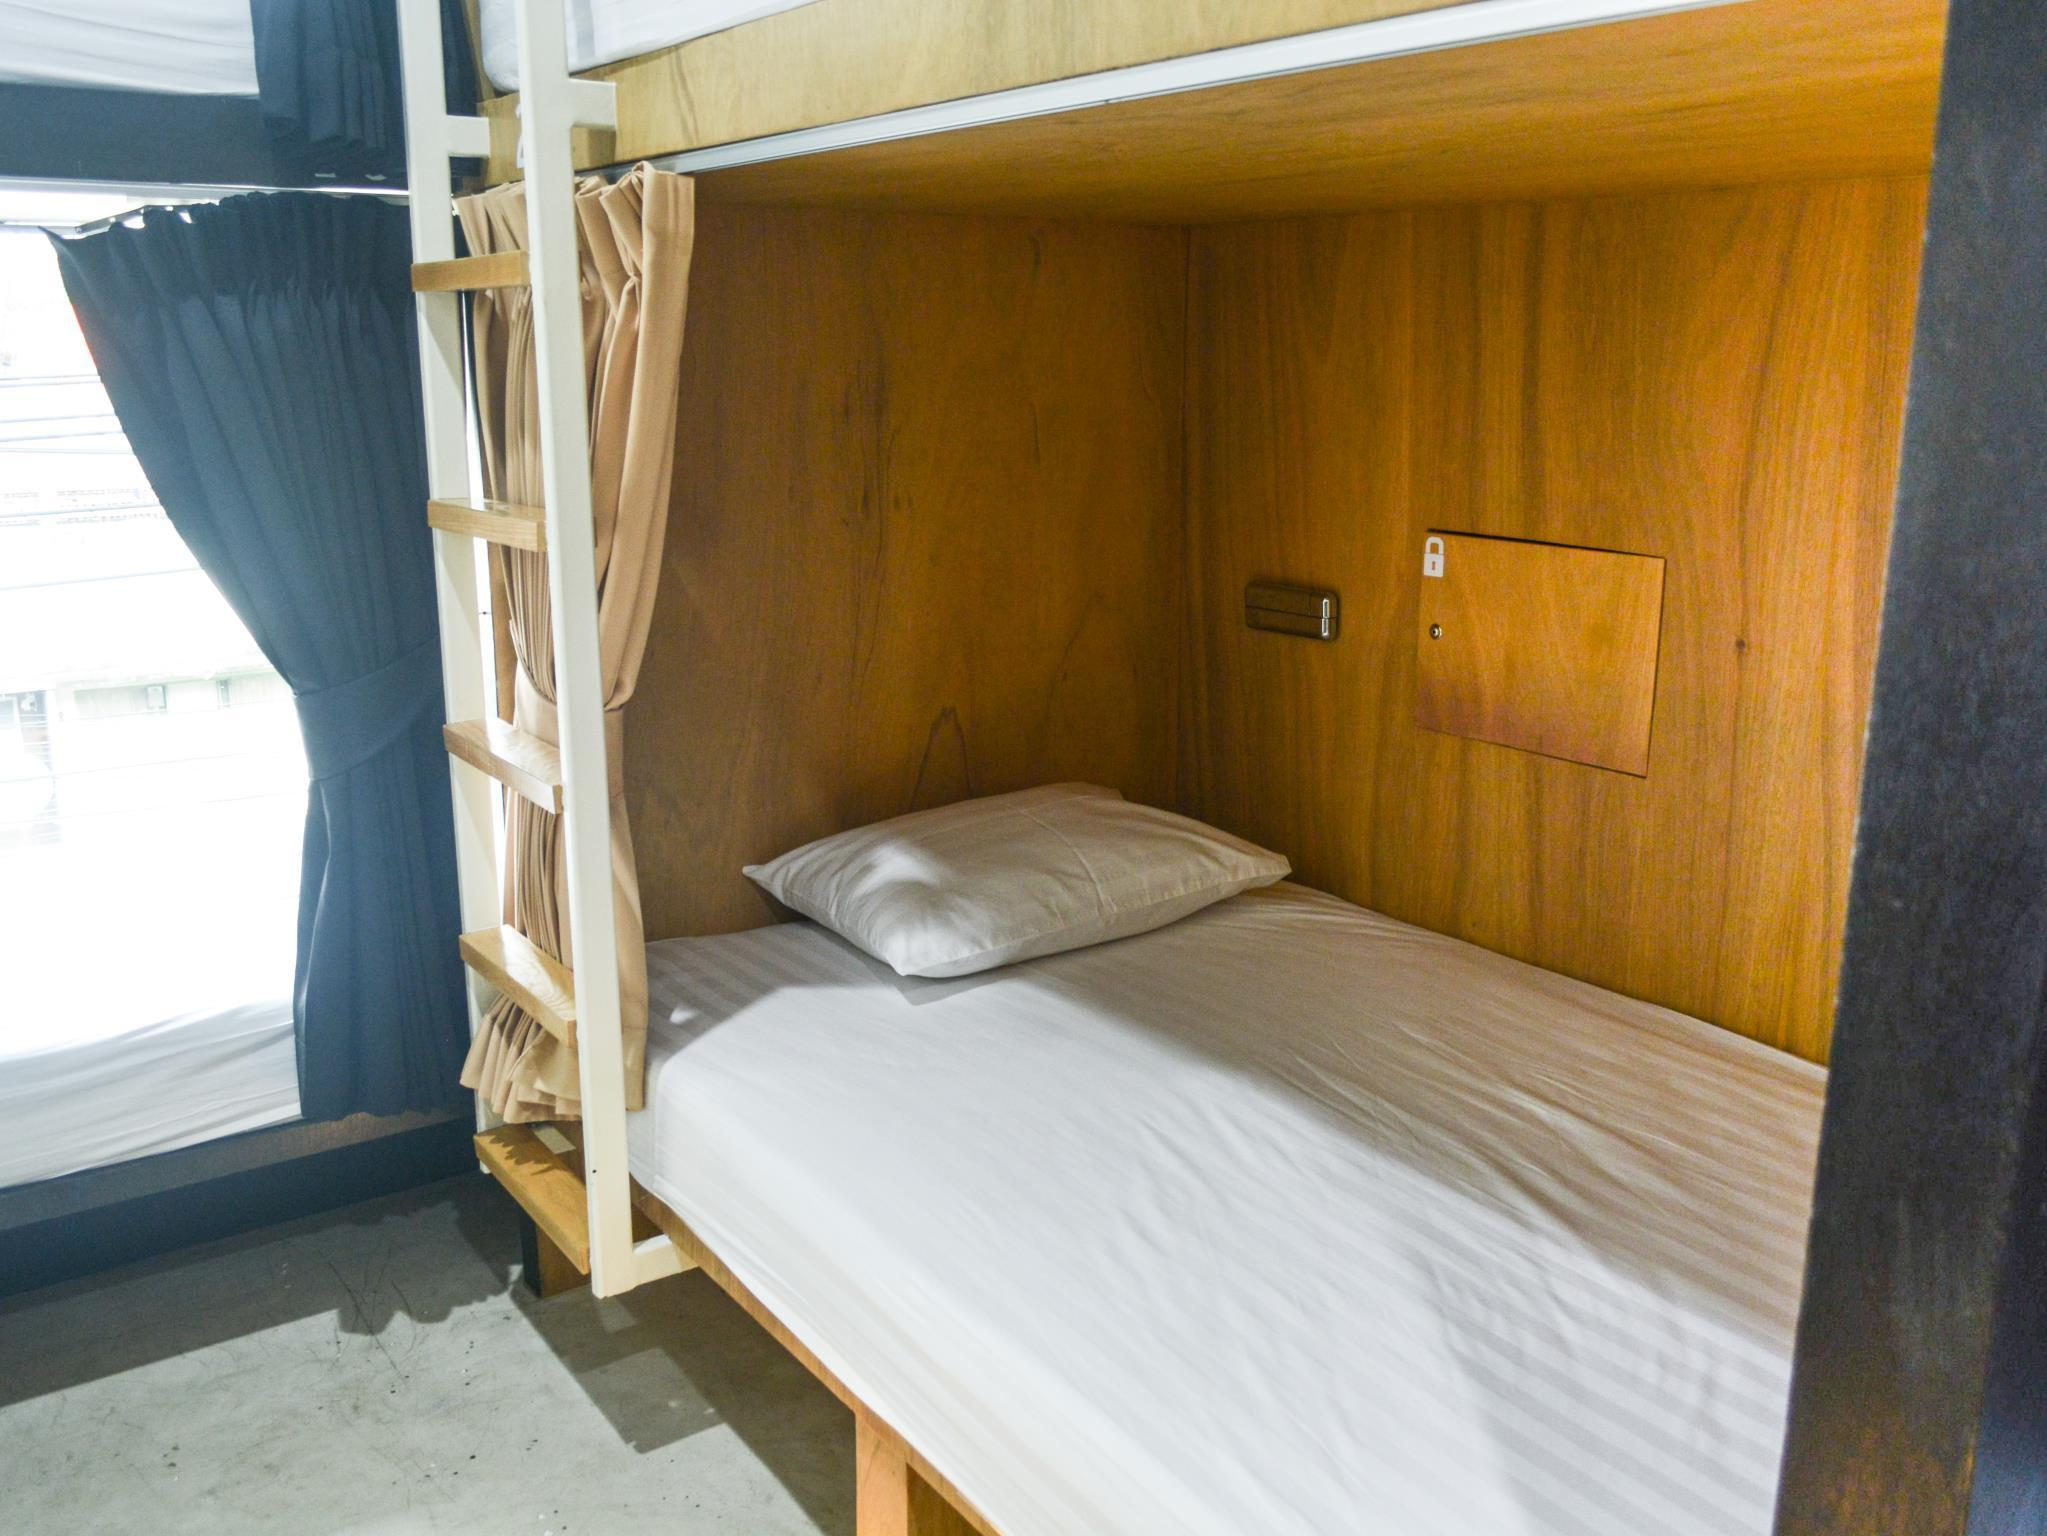 1 Double Bed for 2 People in 6-Bed Dormitory - Mixed